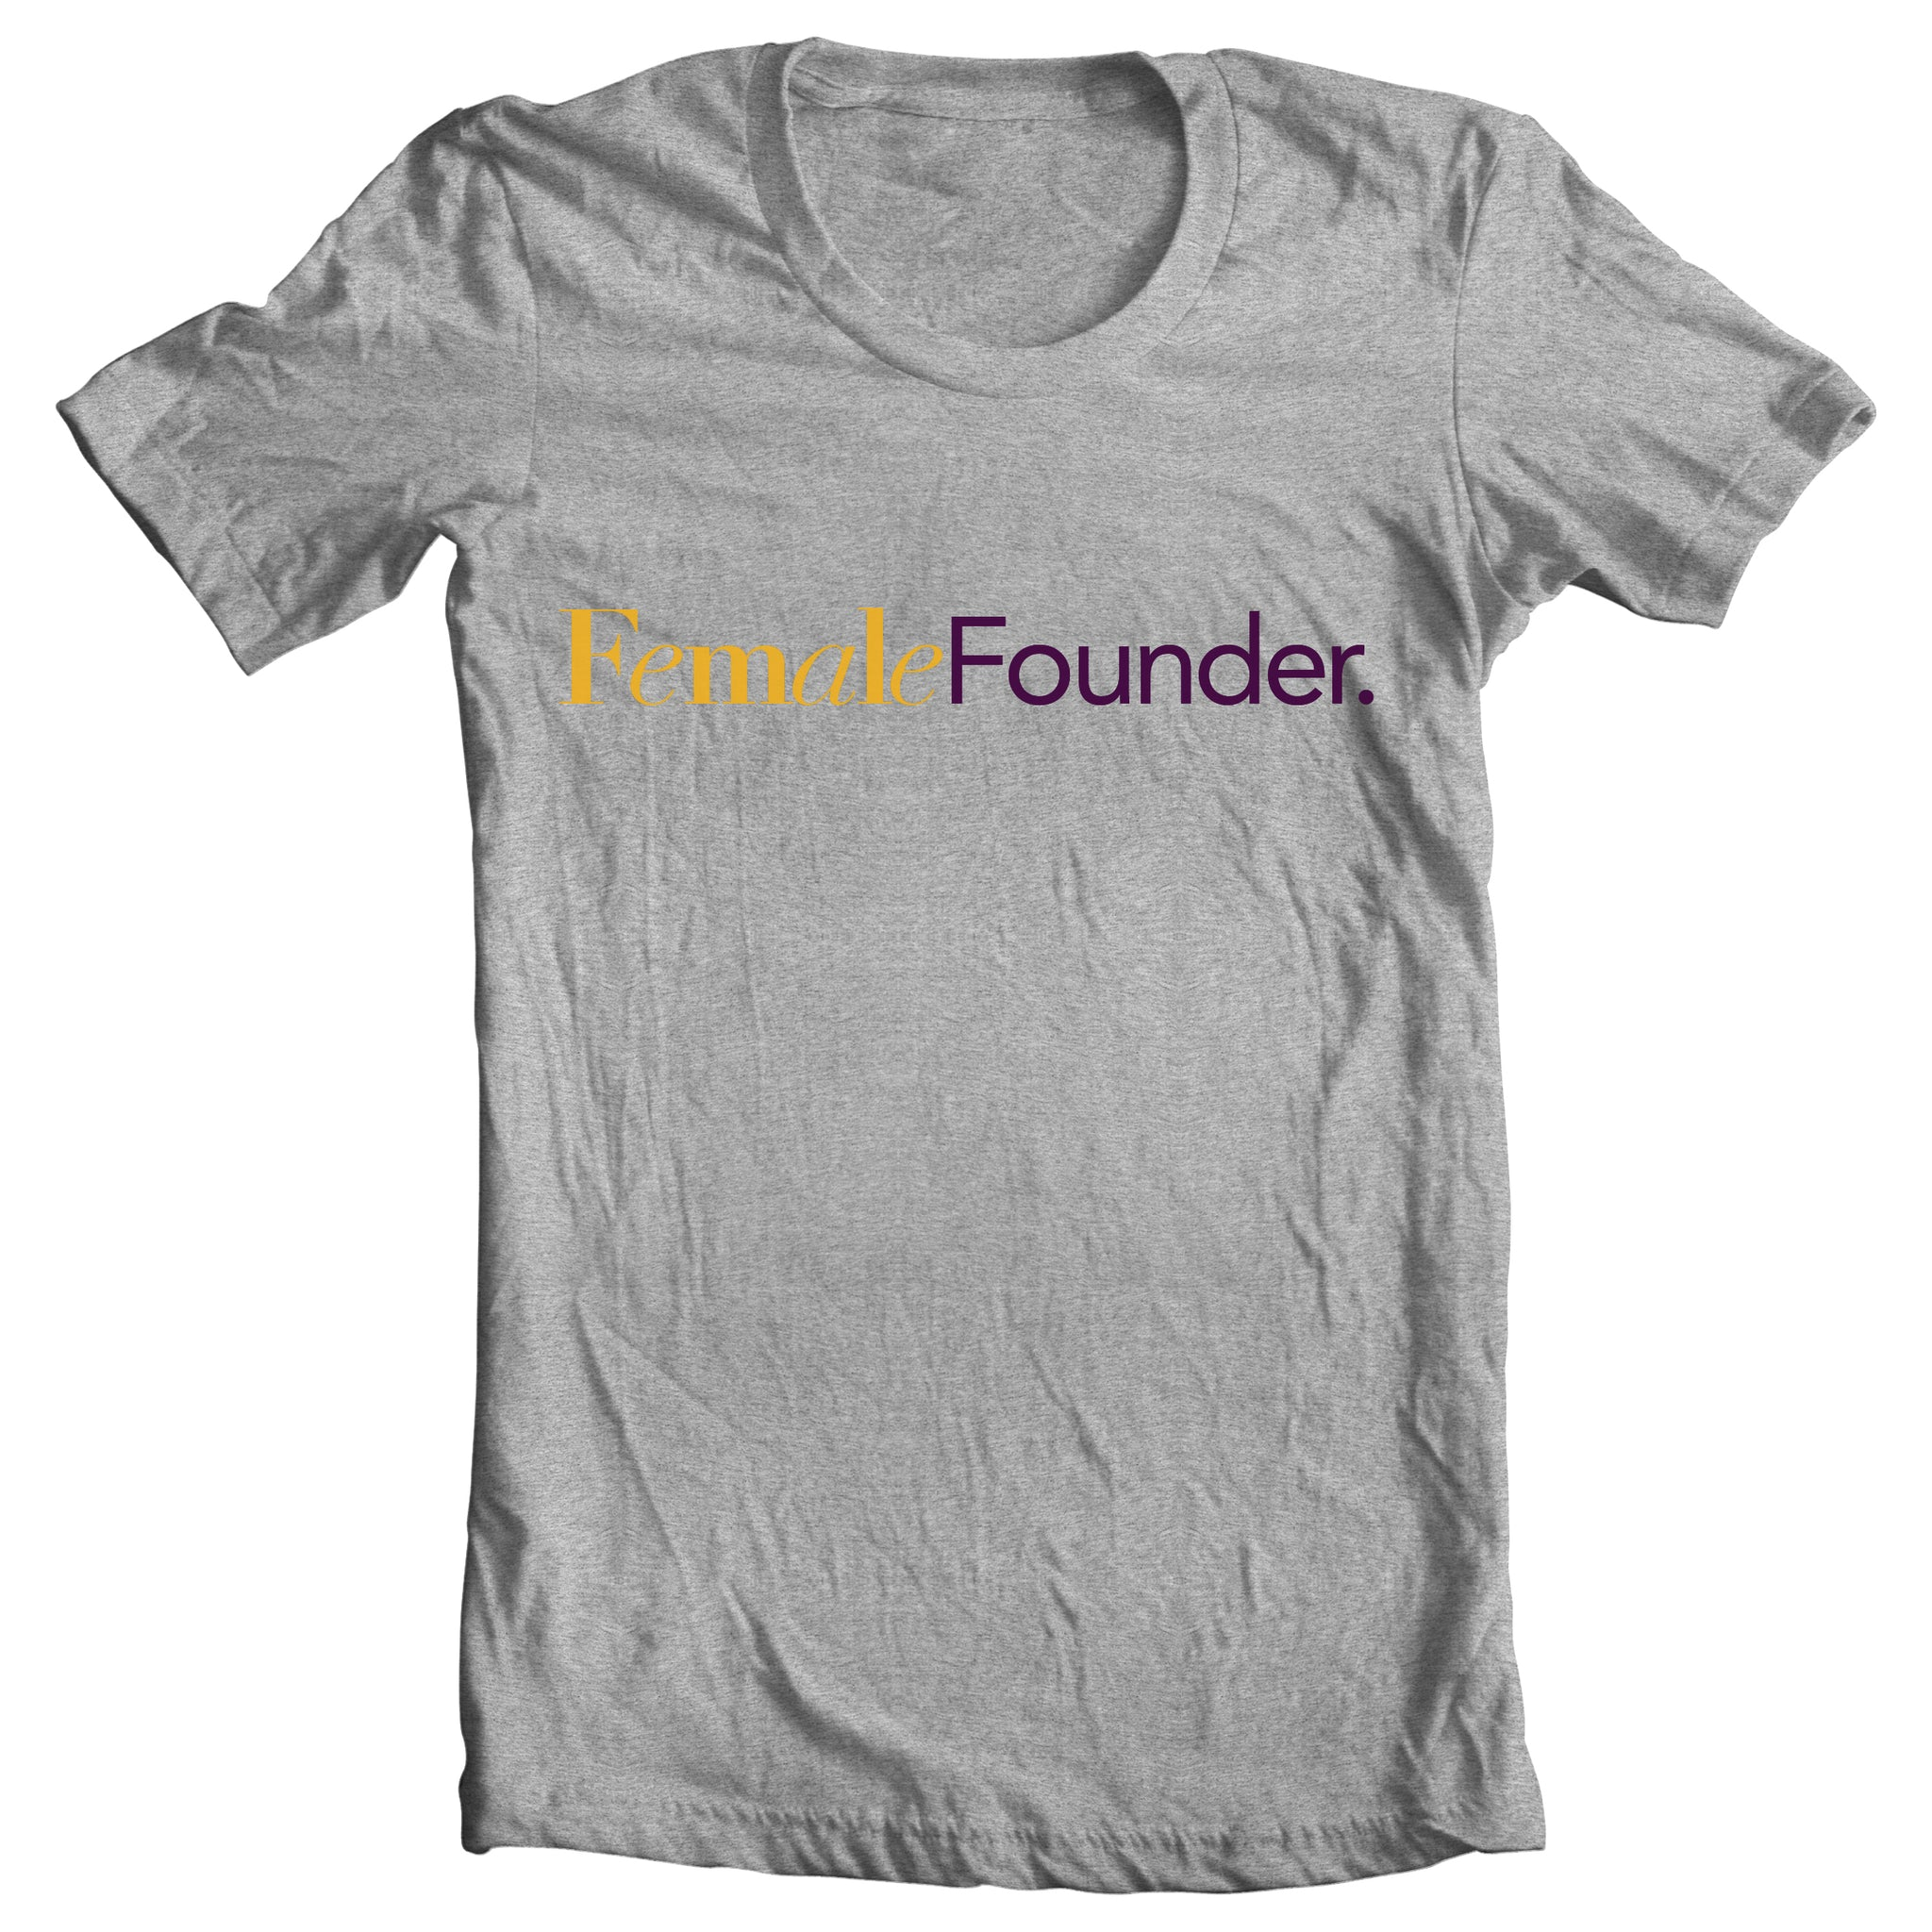 Female Founder2 Graphic Tee from #SHL